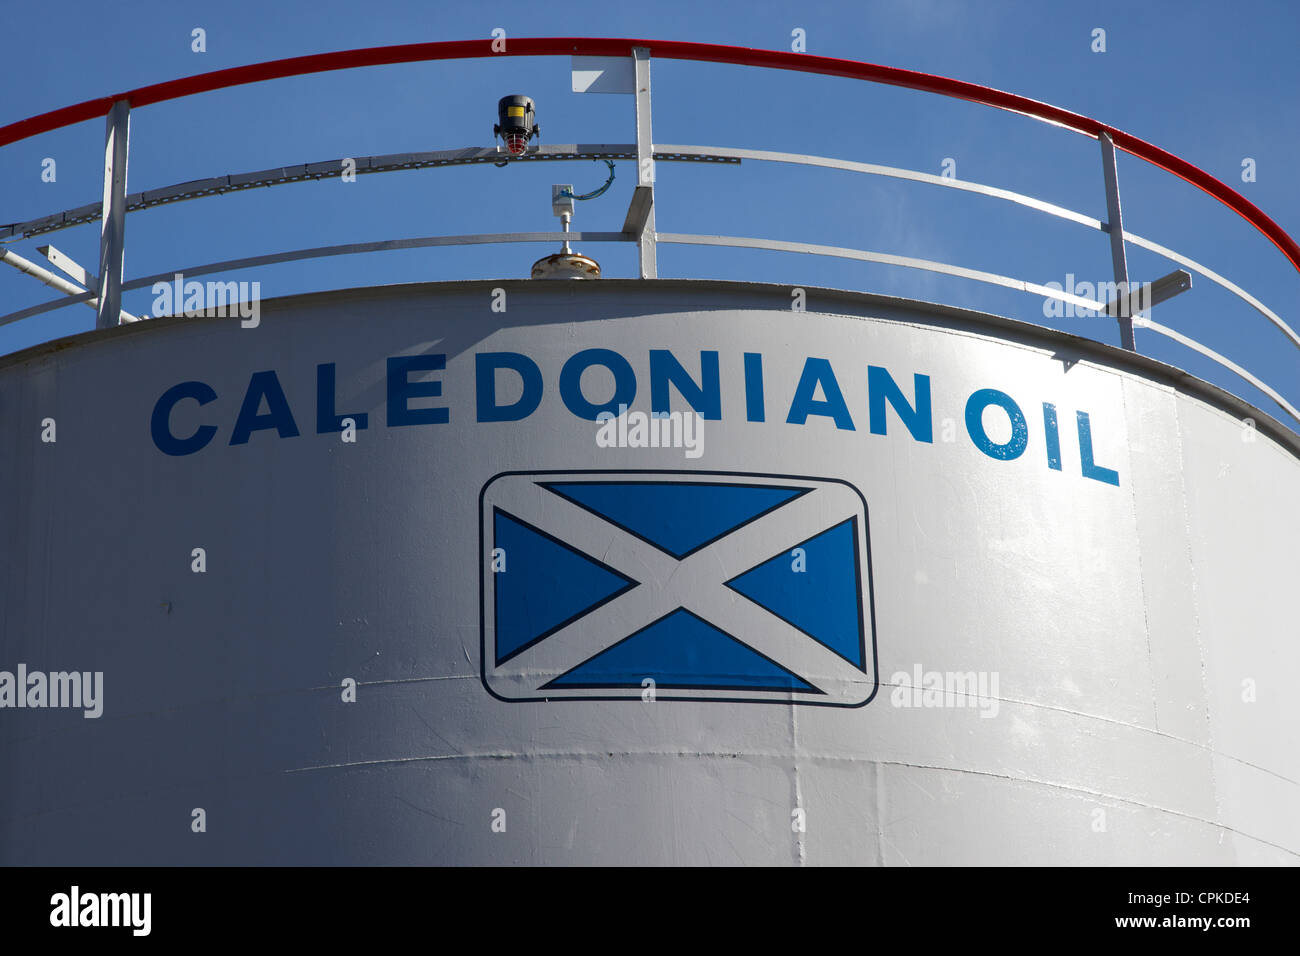 caledonian oil home heating oil storage container in oban scotland - Stock Image